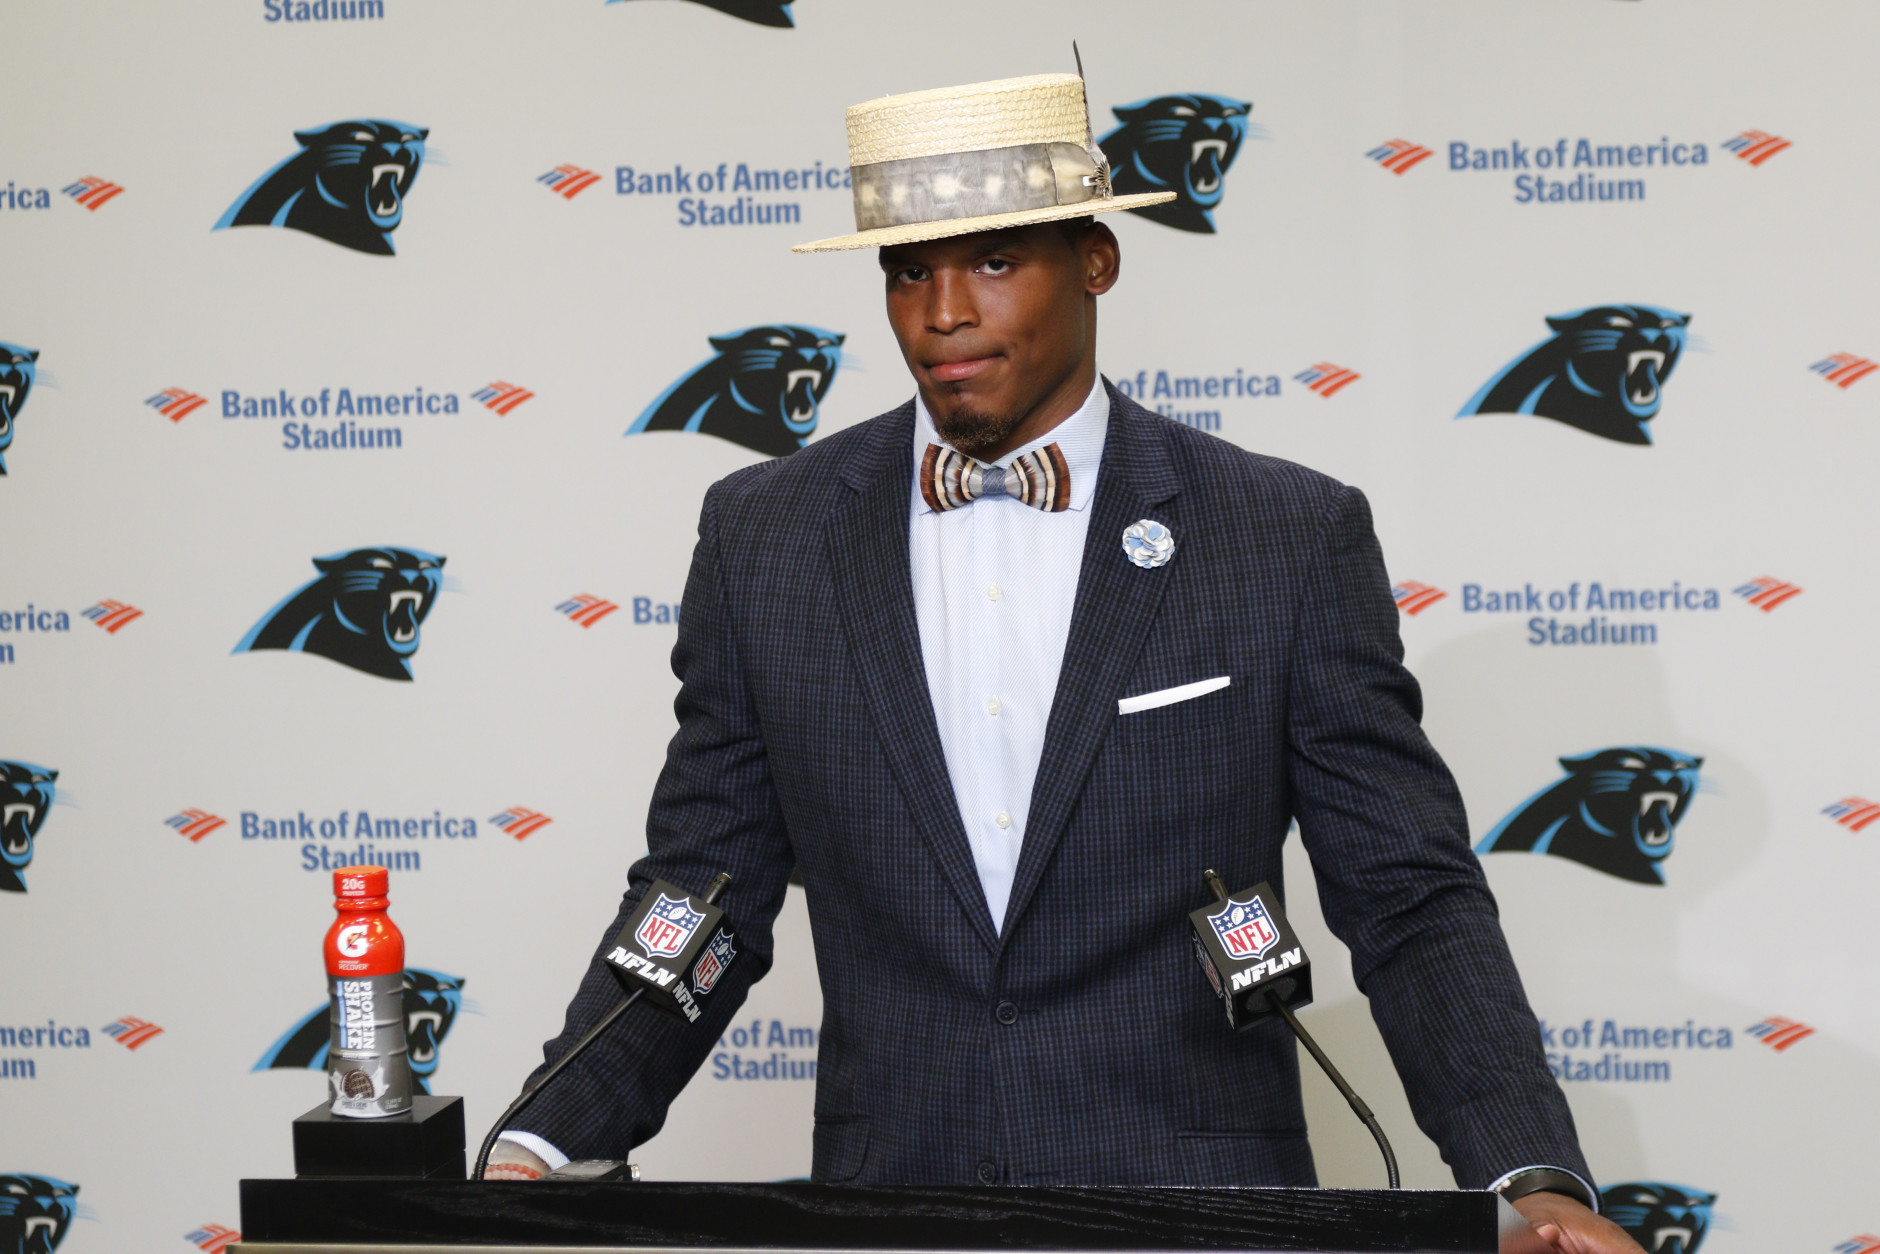 Carolina Panthers' Cam Newton talks to the media after an NFL football game against the San Francisco 49ers in Charlotte, N.C., Sunday, Sept. 18, 2016. The Panthers won 46-27. (AP Photo/Bob Leverone)